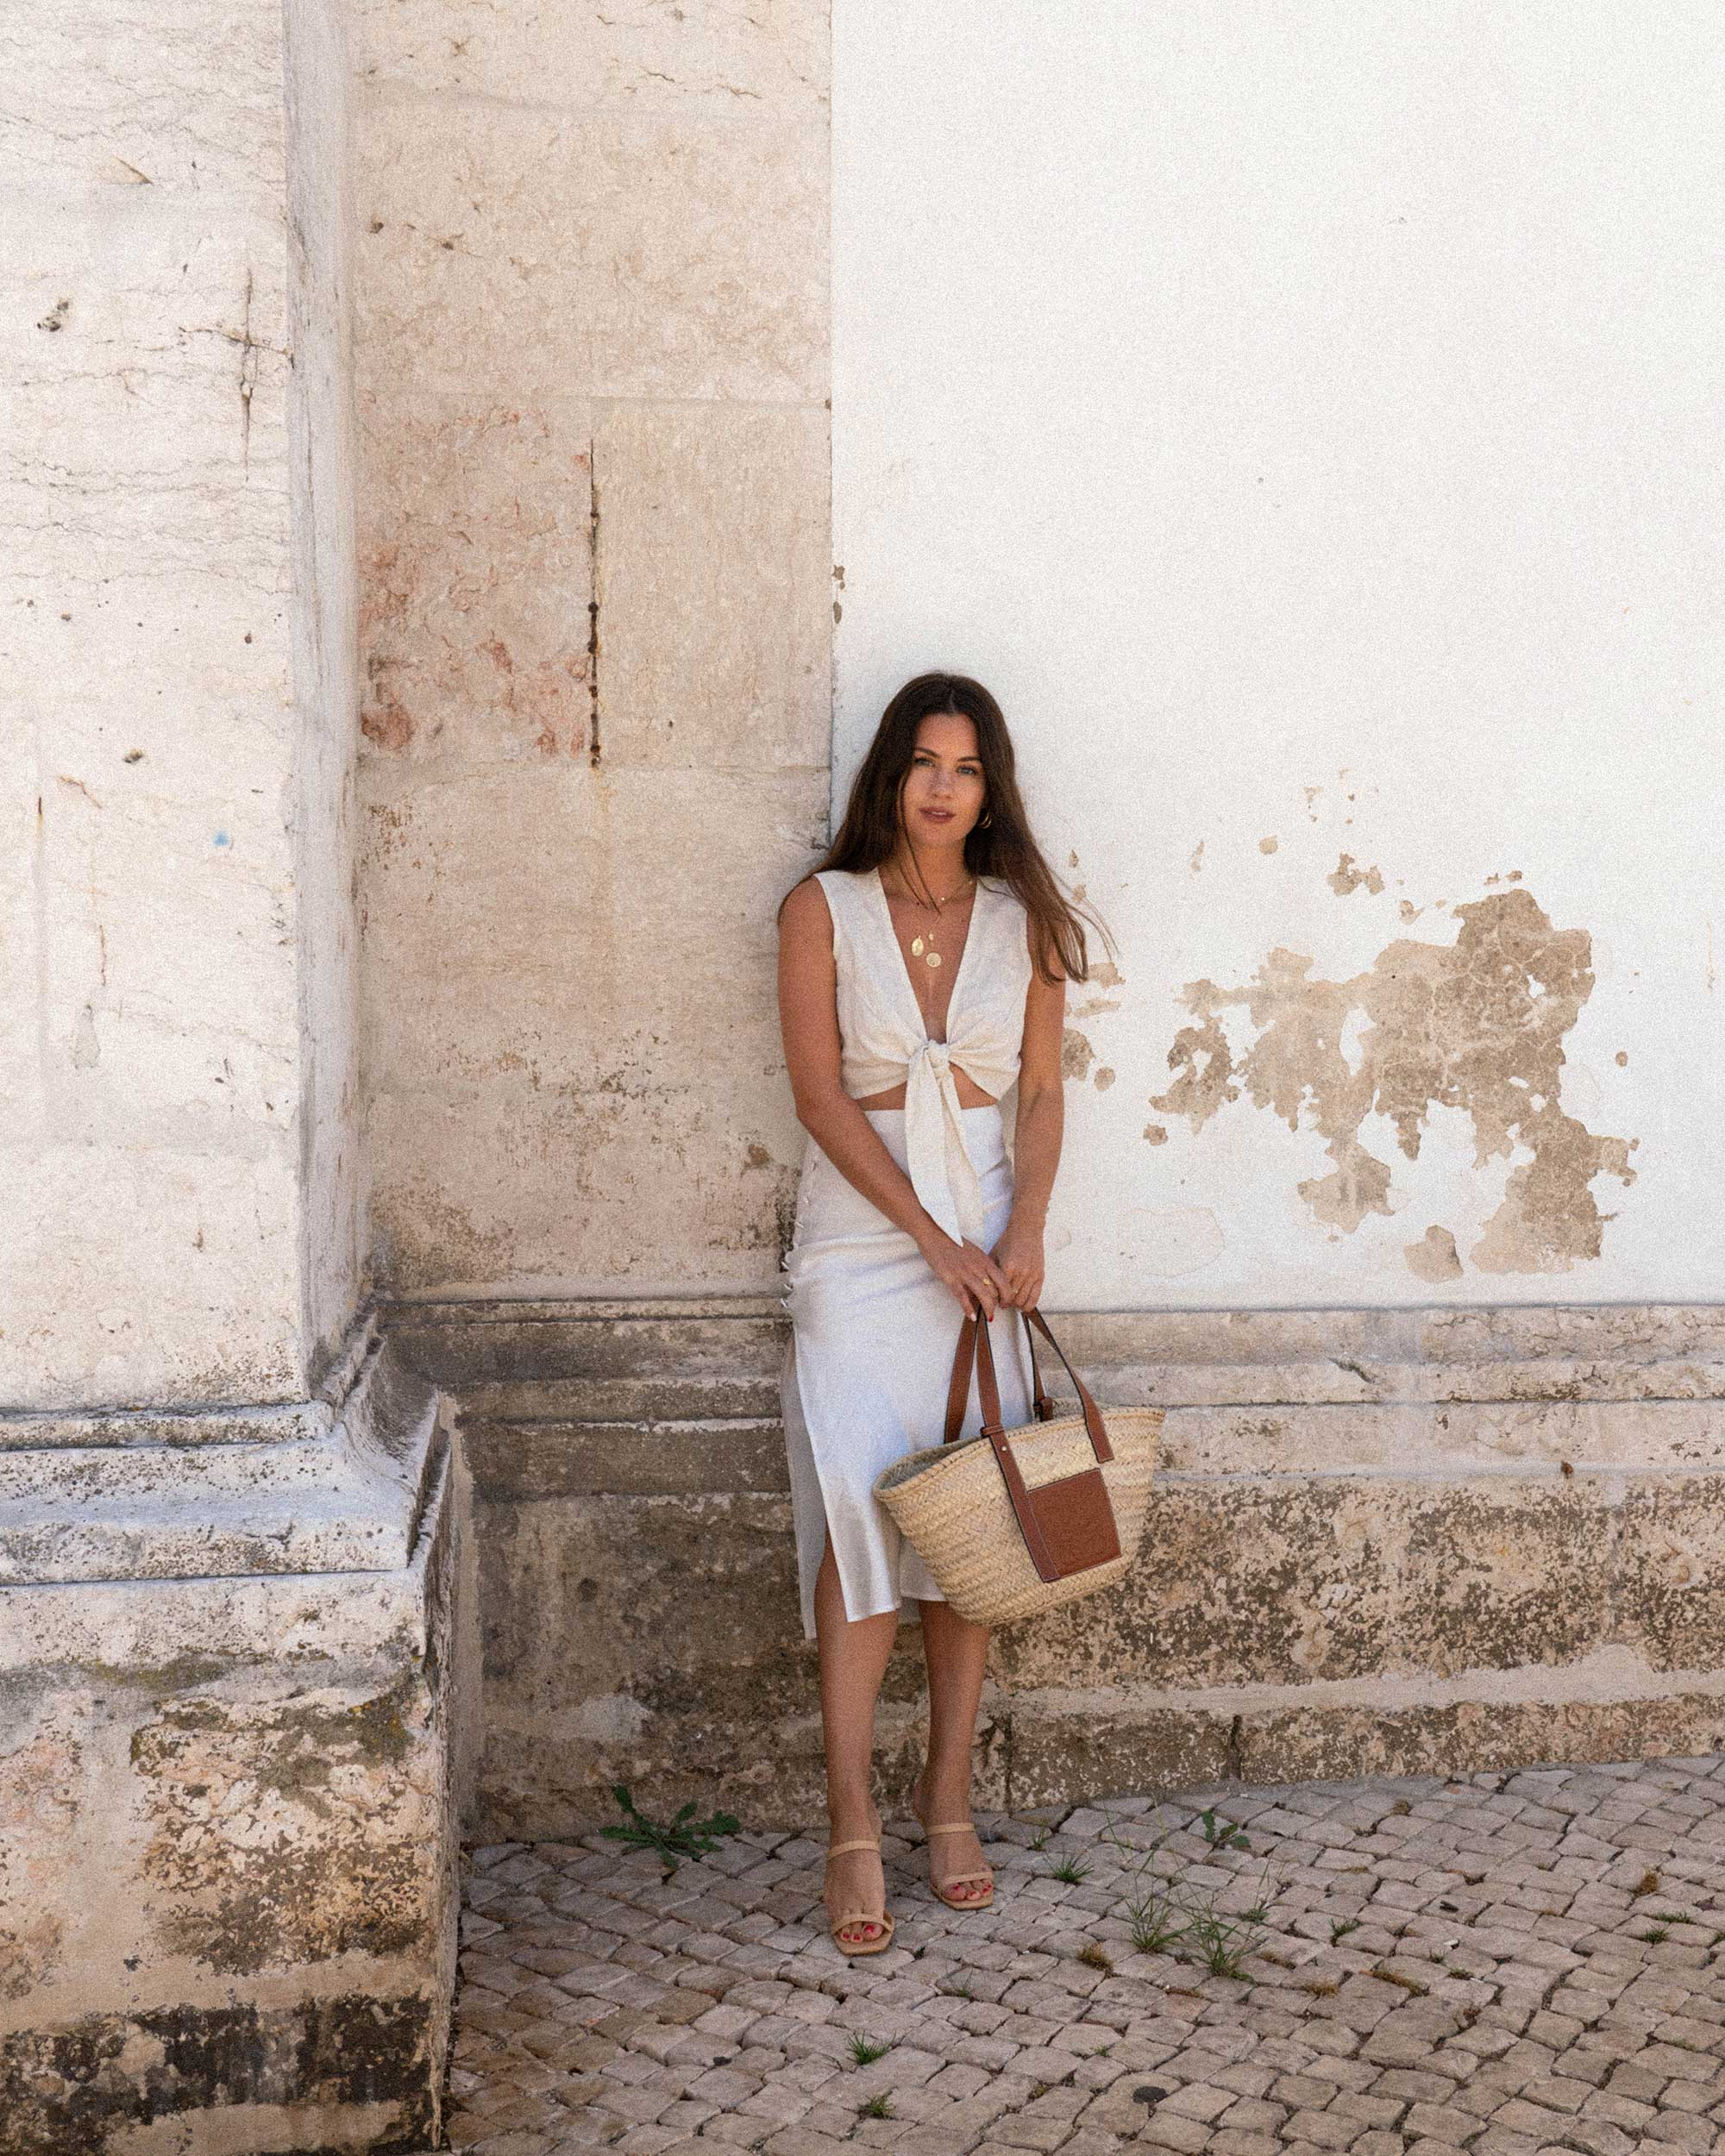 Sarah Butler of Sarah Styles Seattle wears Faithfull the Brand Marcie Plunging Cropped Tie Top and Loewe Raffia Basket Tote Bag in Lisbon, Portugal | @sarahchristine -7.jpg